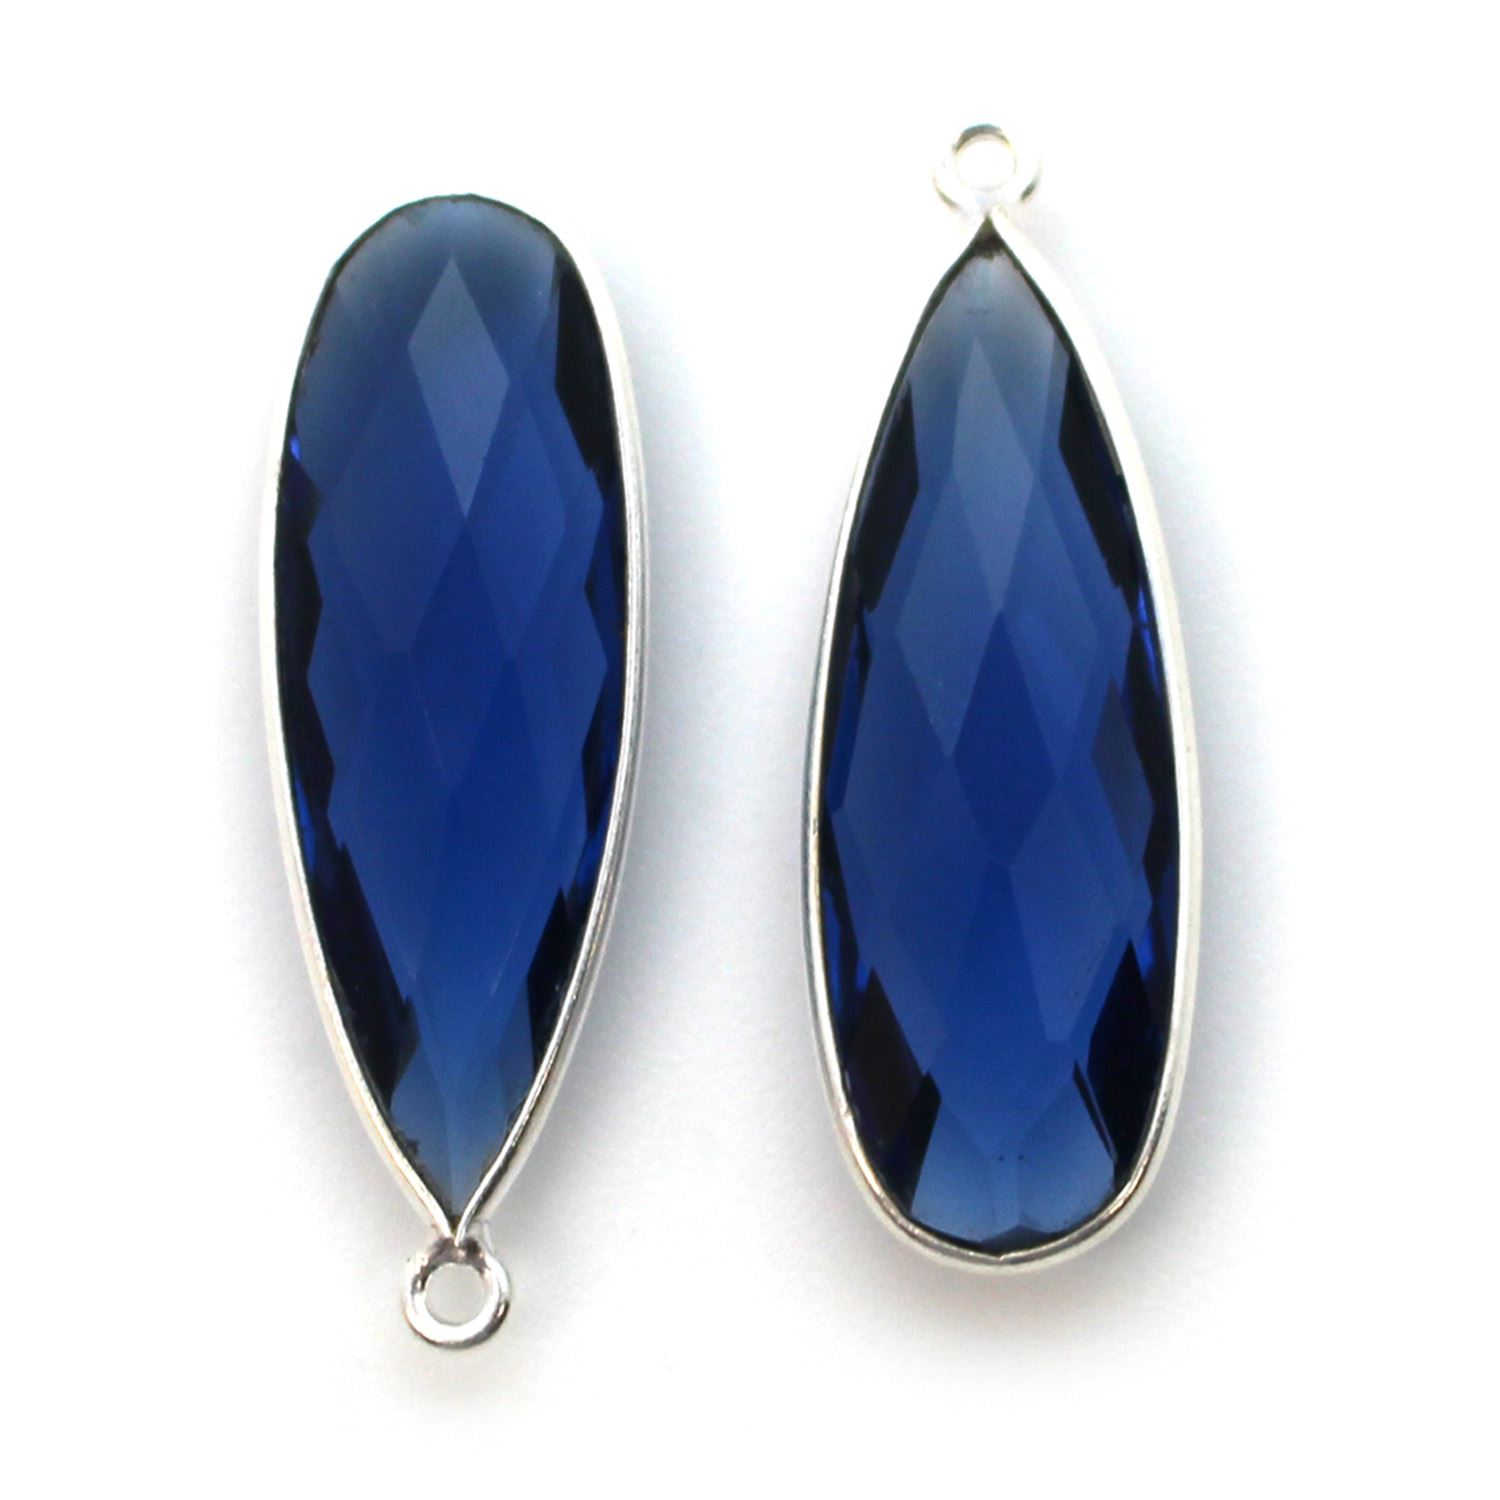 Bezel Charm Pendant -Sterling Silver Charm-Blue Iolite Quartz-Elongated Teardrop Shape -34 by 11mm  (sold per 2 pieces)